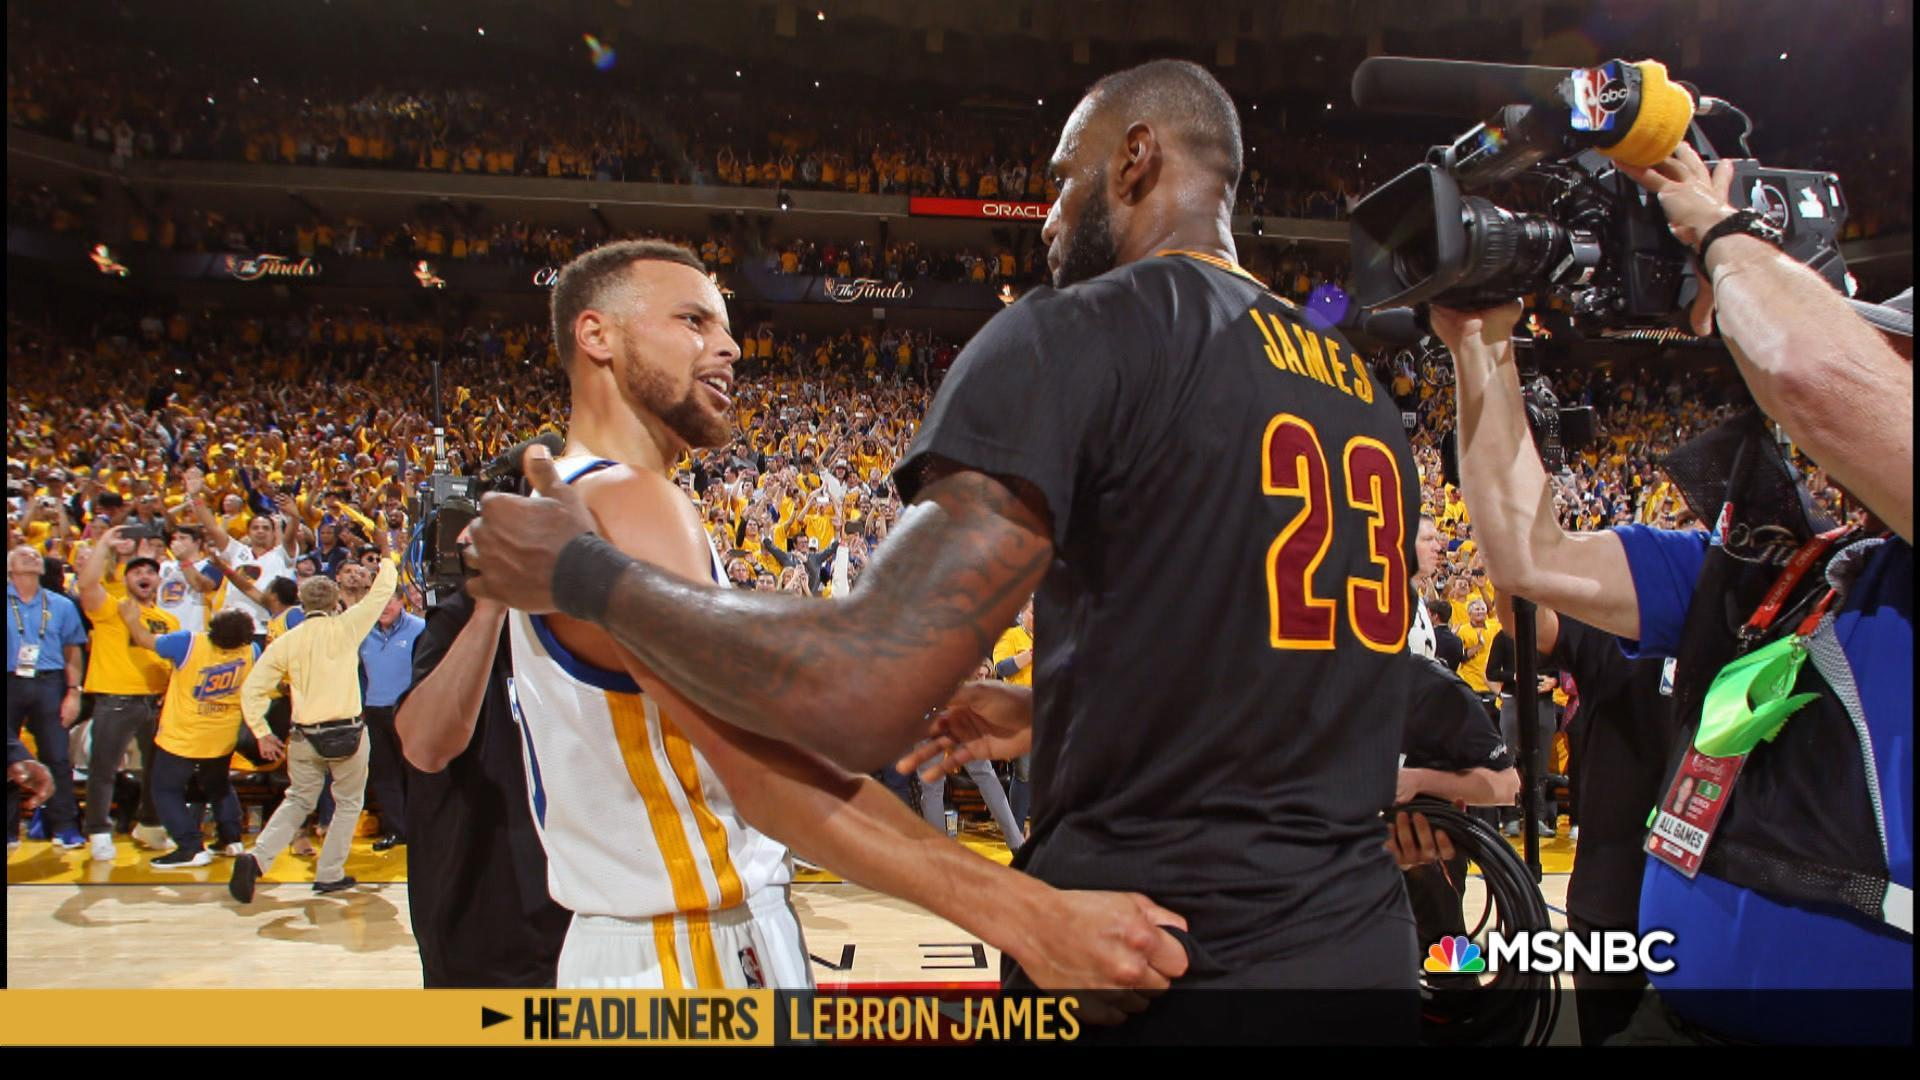 'Headliners: LeBron James' The King vs. the President